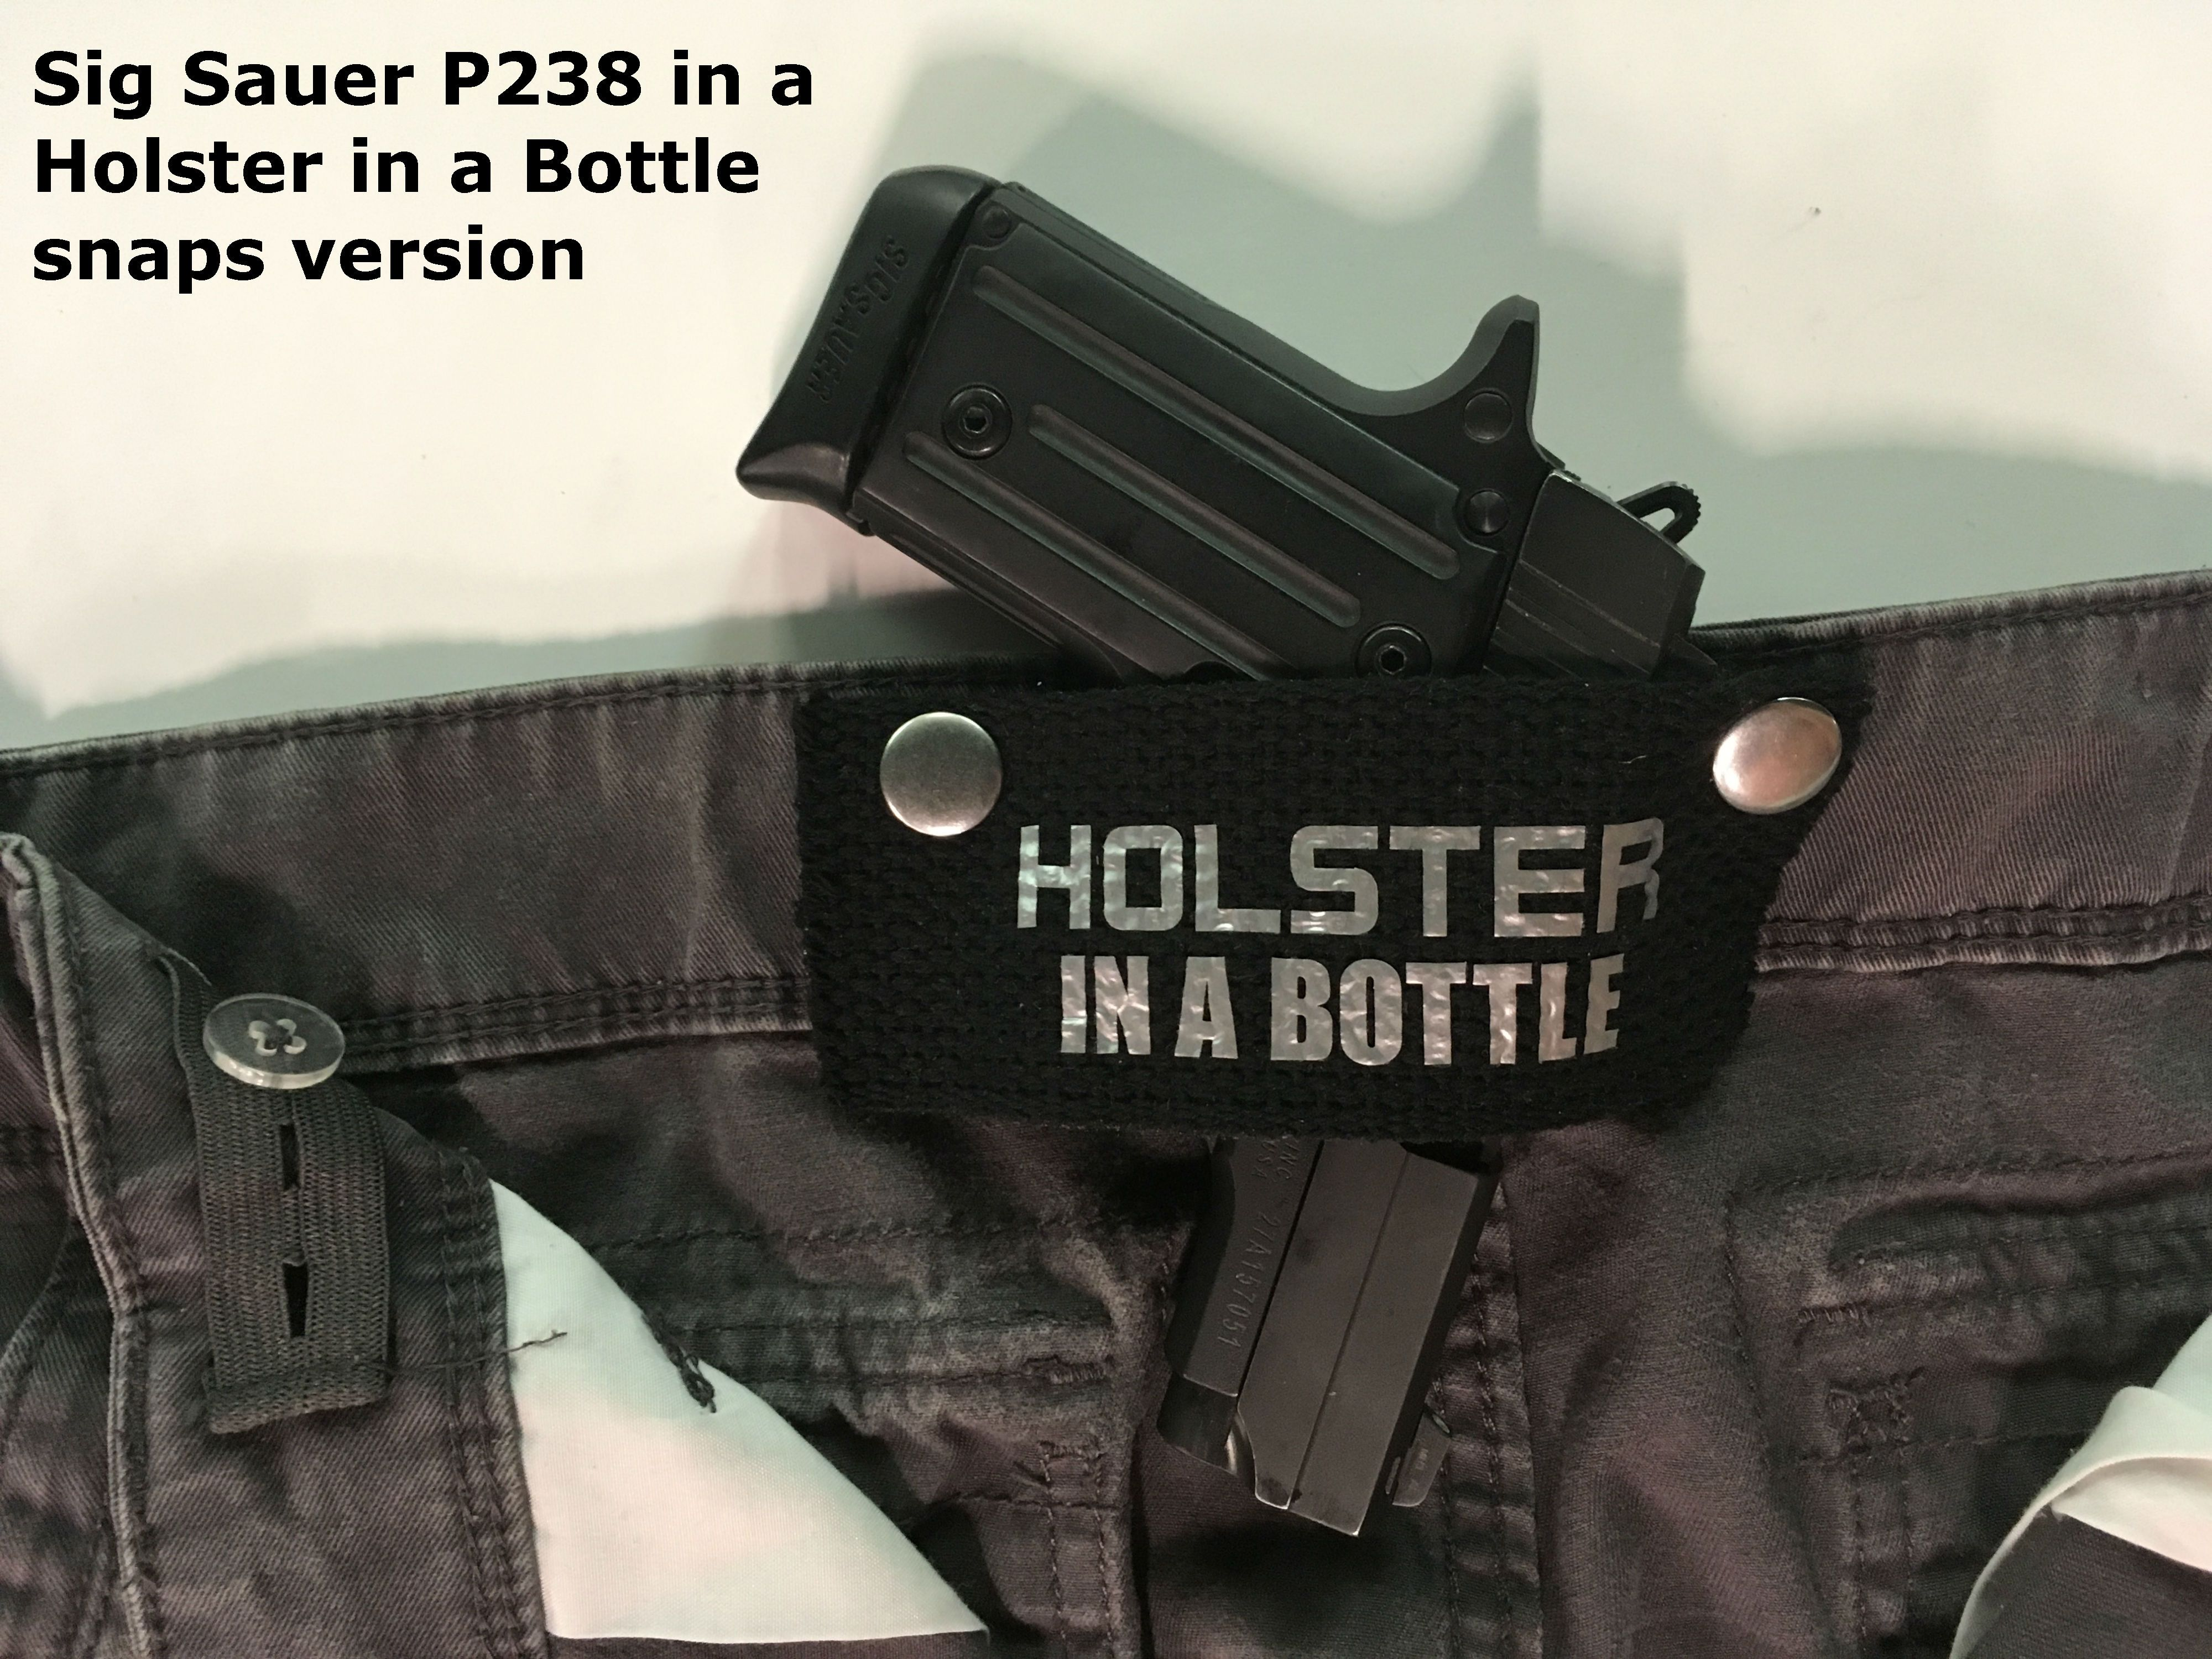 Does the HolsterInABottle.com concealed carry snaps style work with ... Sig Sauer P238? Yes - compliments of Bullet Stop gun shop/range